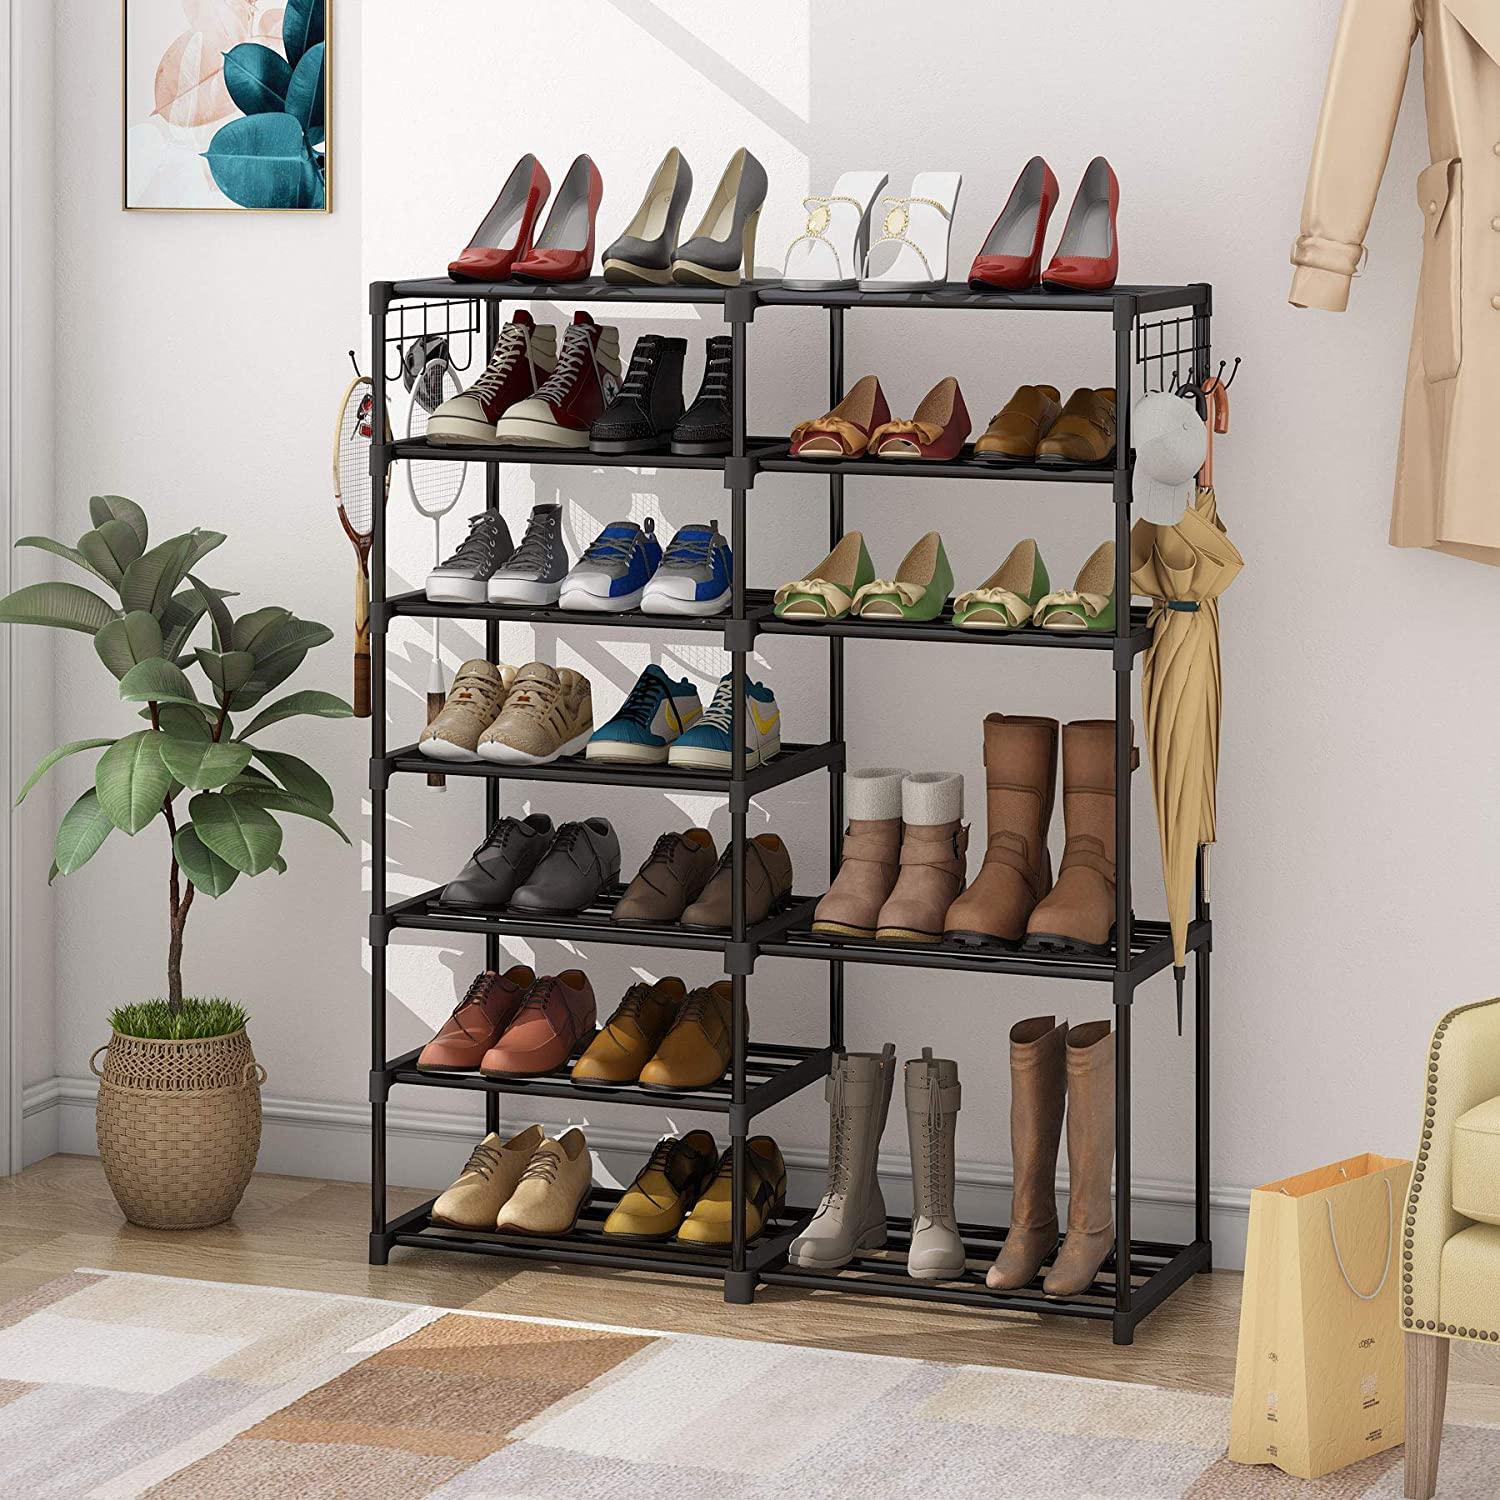 Shoe rack filled with shoes